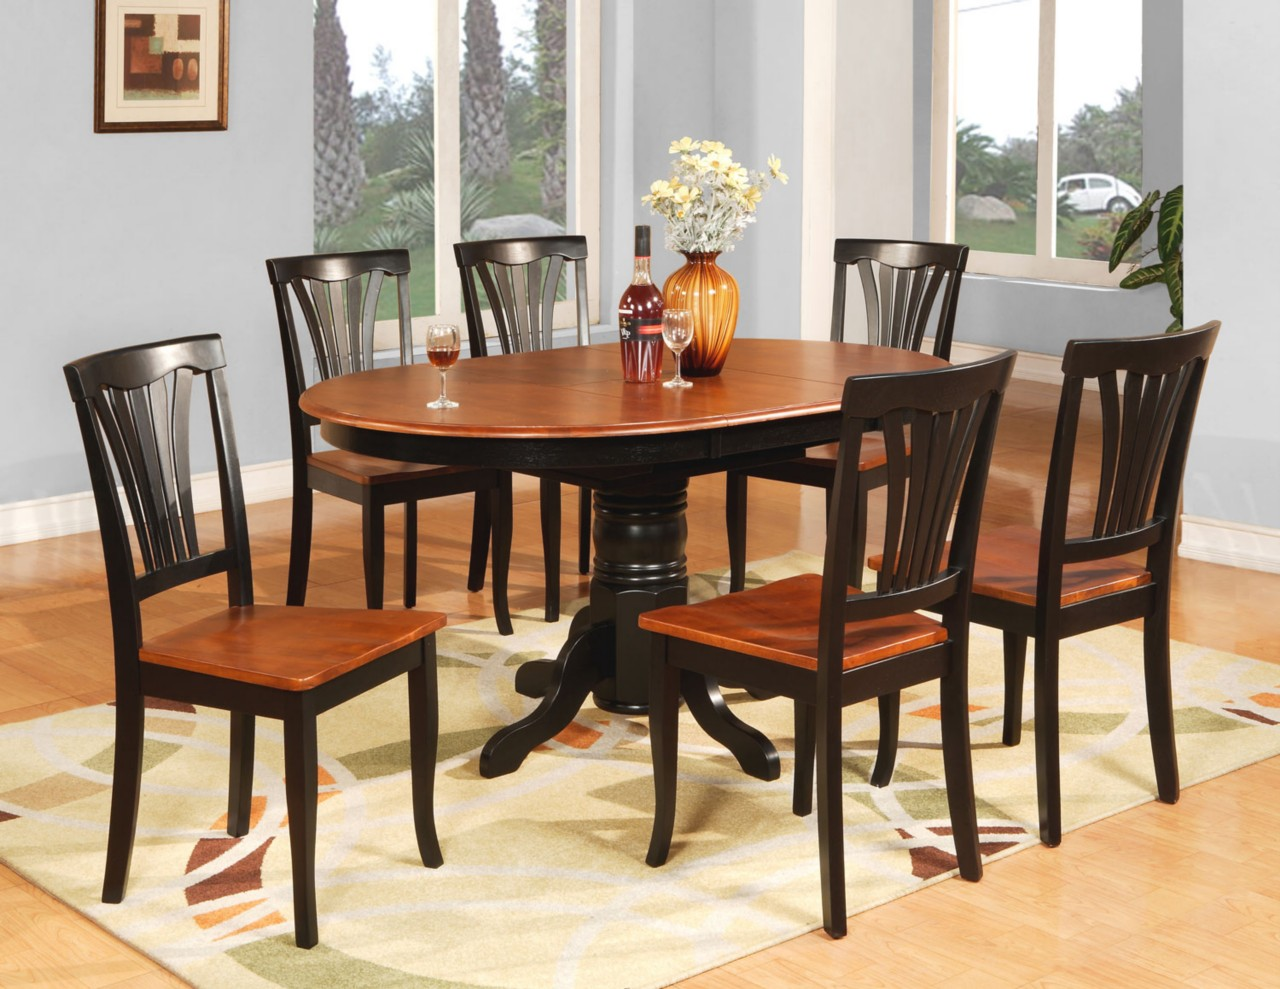 7 pc oval dinette kitchen dining room table 6 chairs ebay for Dining room table with 6 chairs